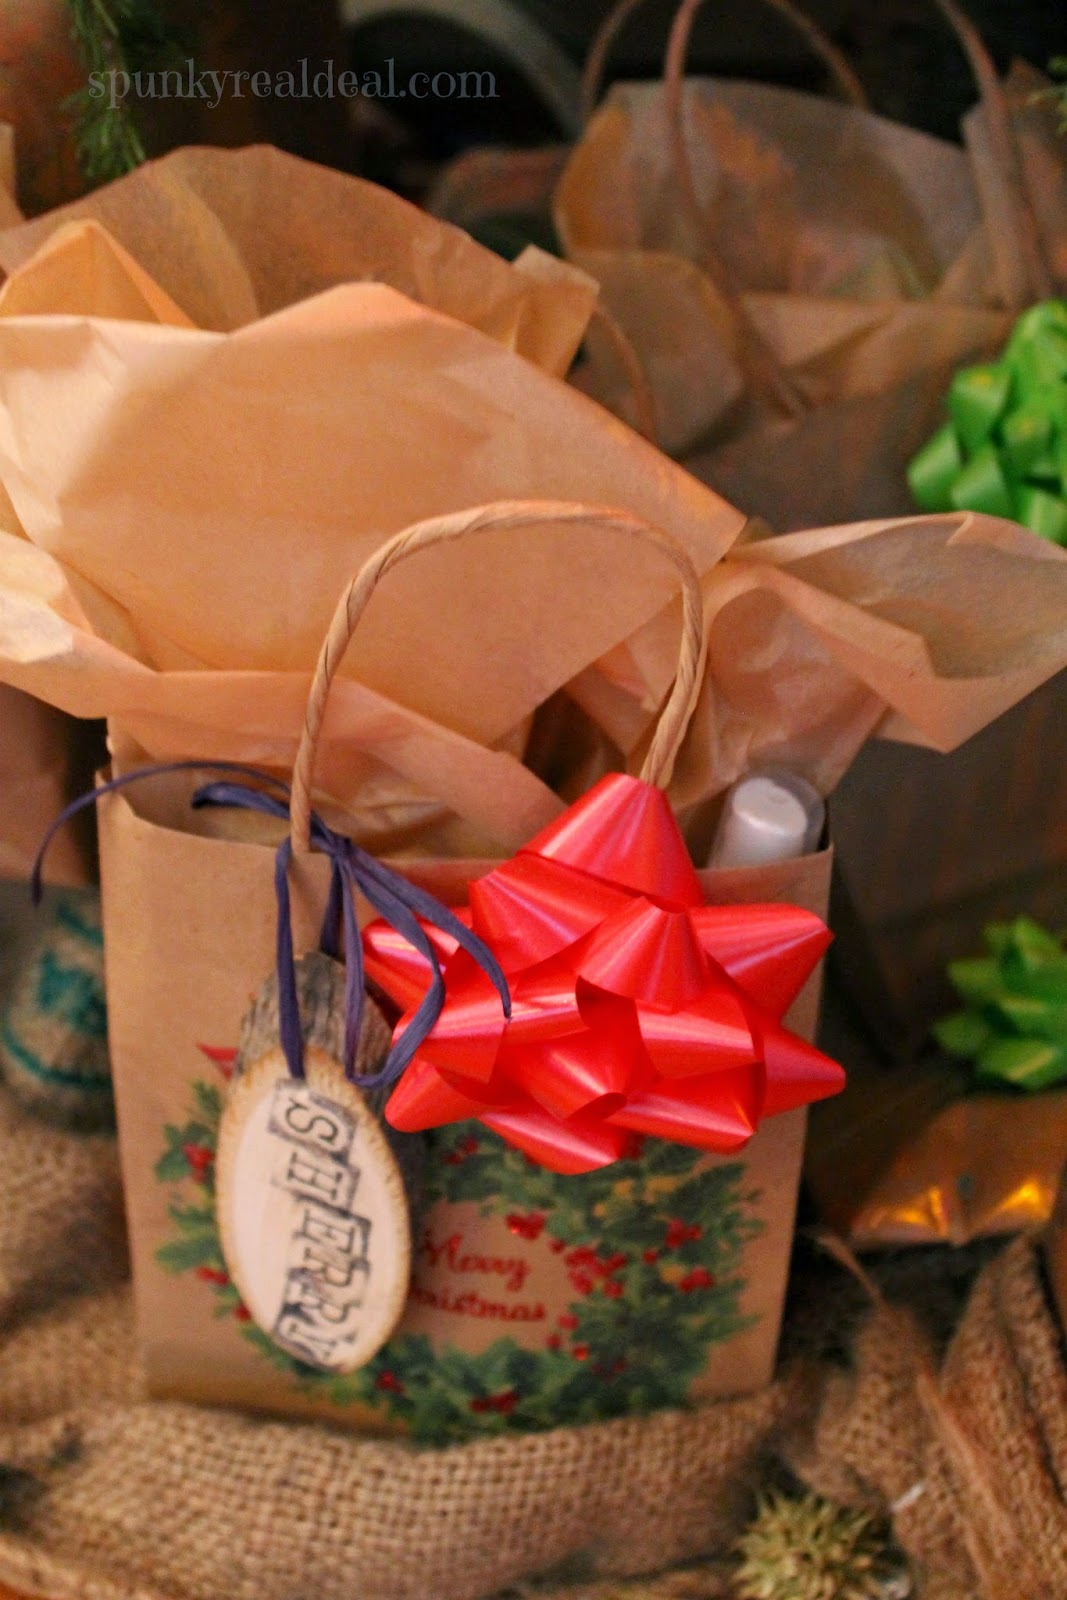 Rustic Presents Gift Wrapping